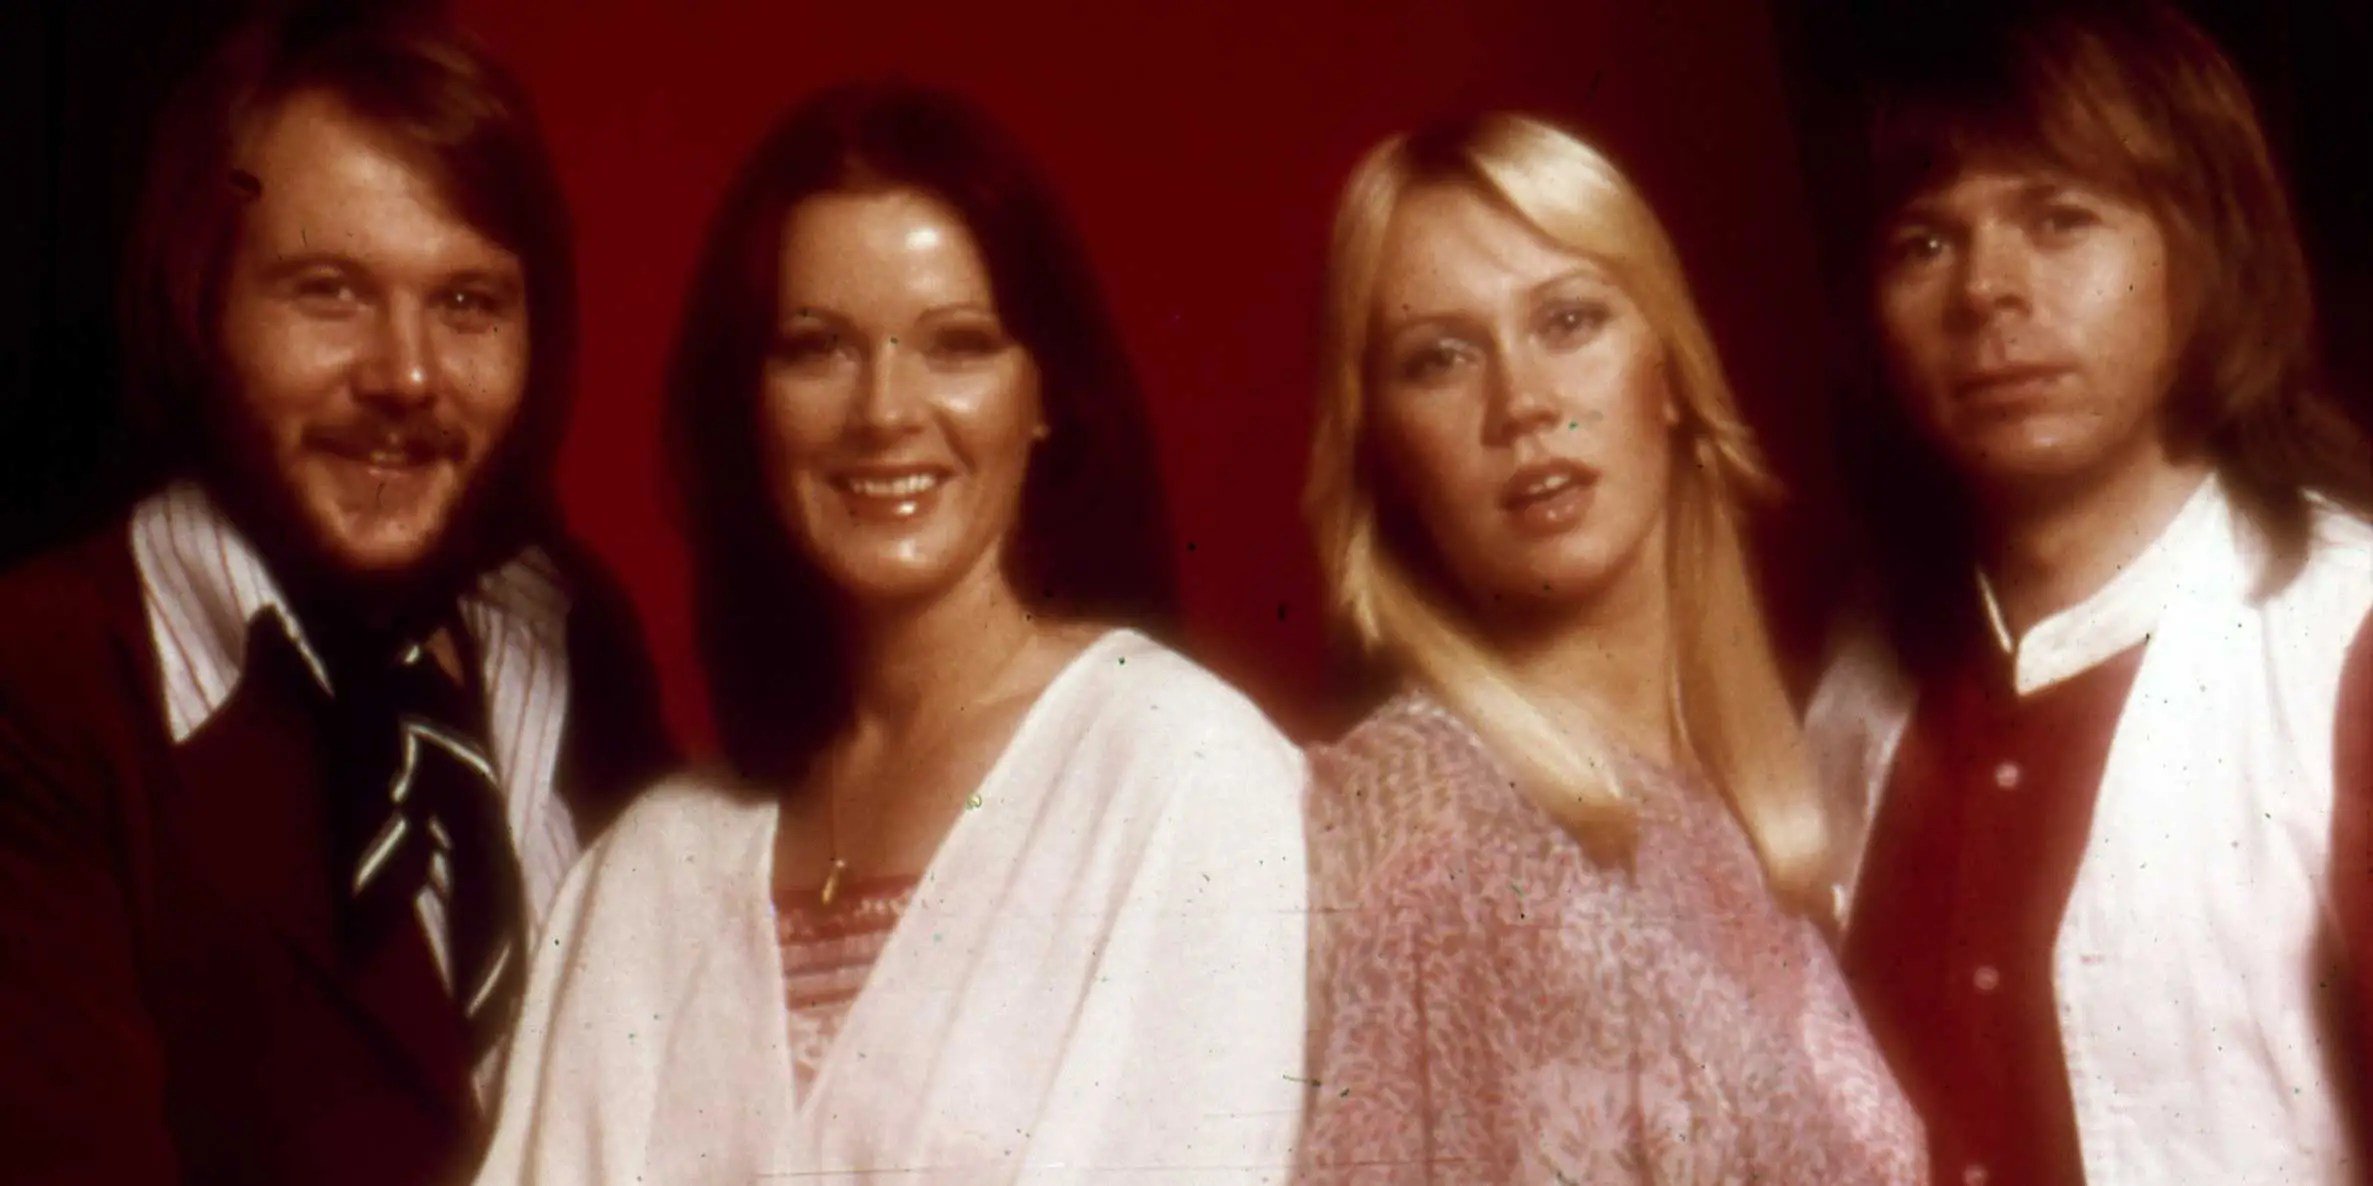 Abba Band Why Abba Turned Down Us1 Billion To Reunite In 2000